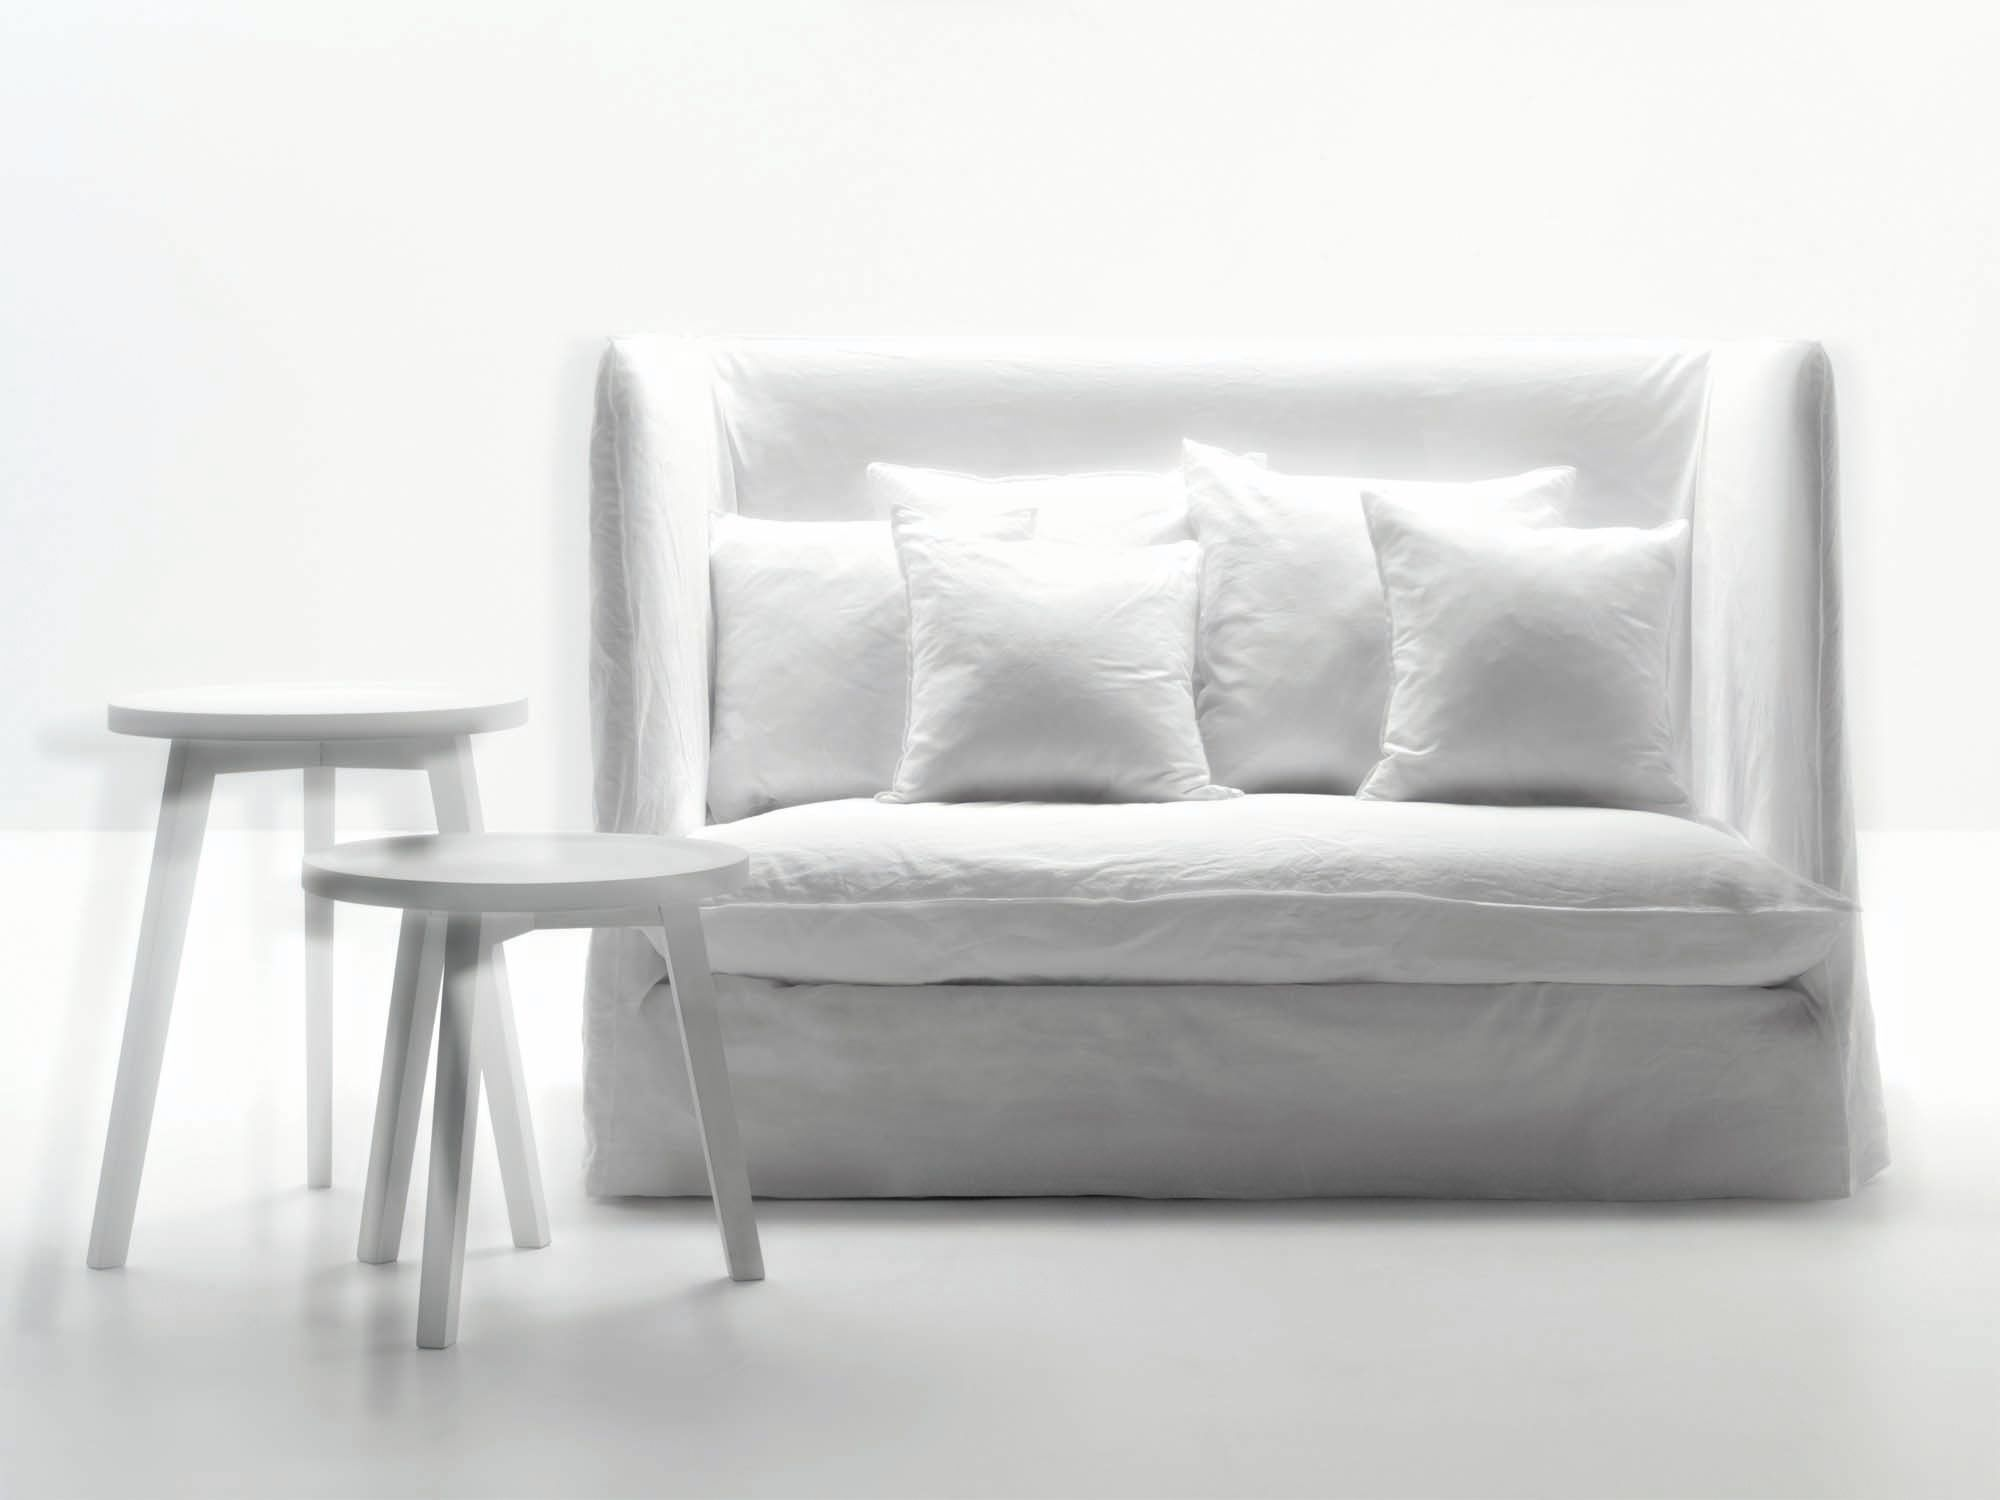 Gervasoni Sedie ~ Best gervasoni images couches couch and armchairs